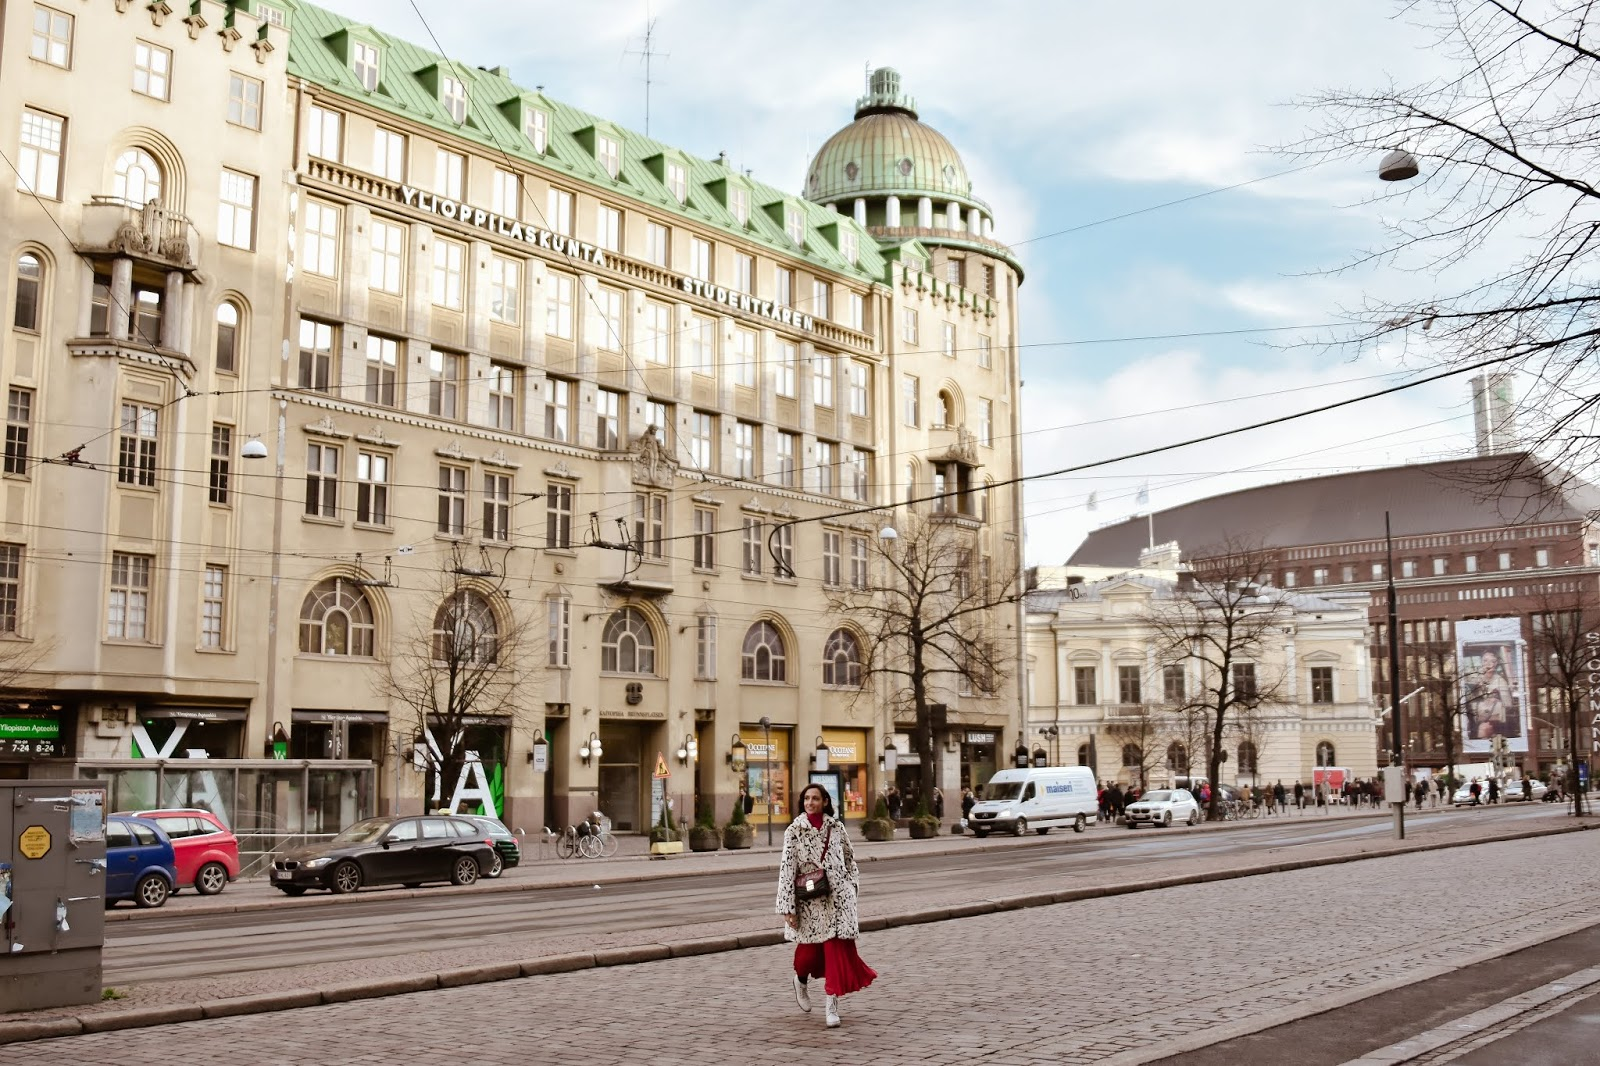 el-blog-de-silvia-rodriguez-lifestyle-travel-finlandia-my-helsinki-residence-total-red-hm-yacare-blogger-influencer